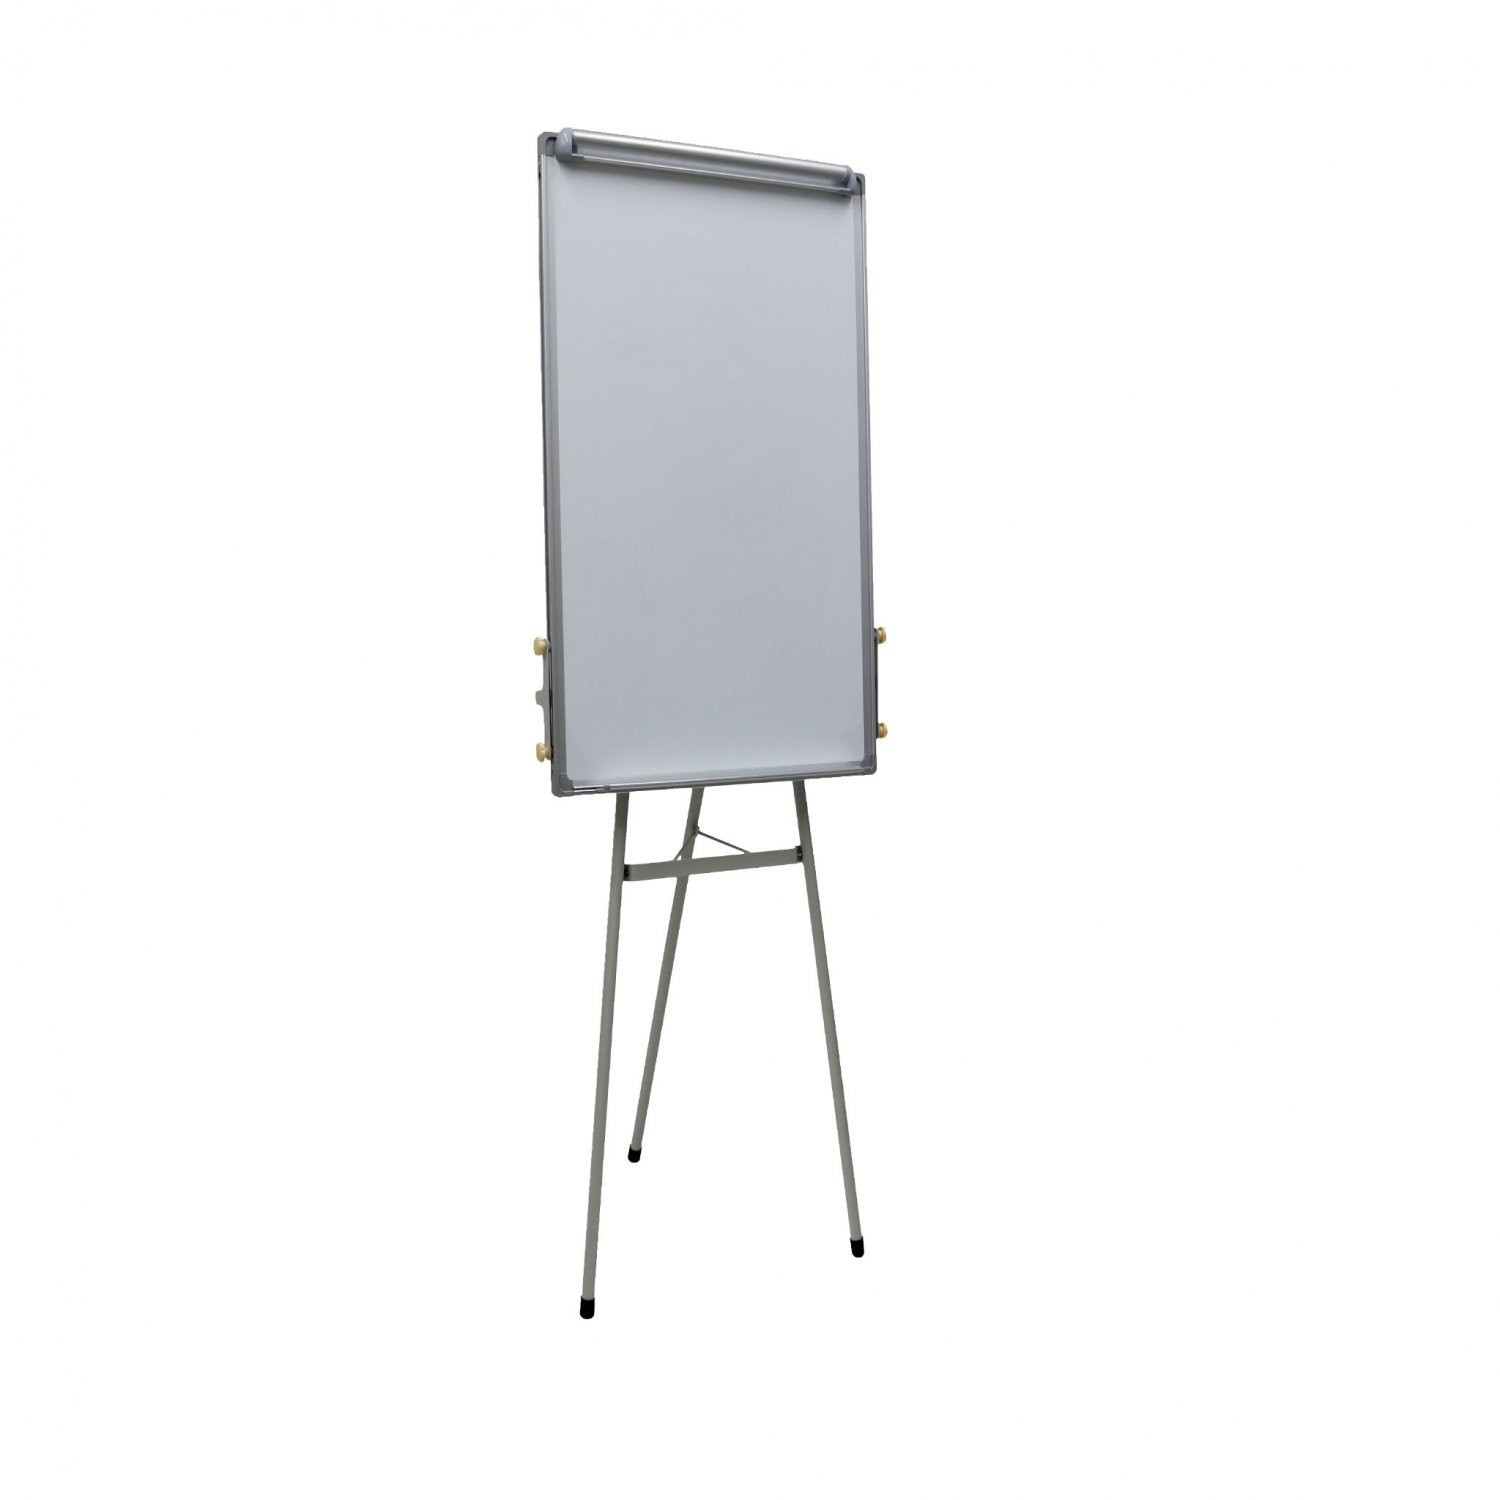 A1 Flipchart Easel Magnetic Presentation Whiteboard With